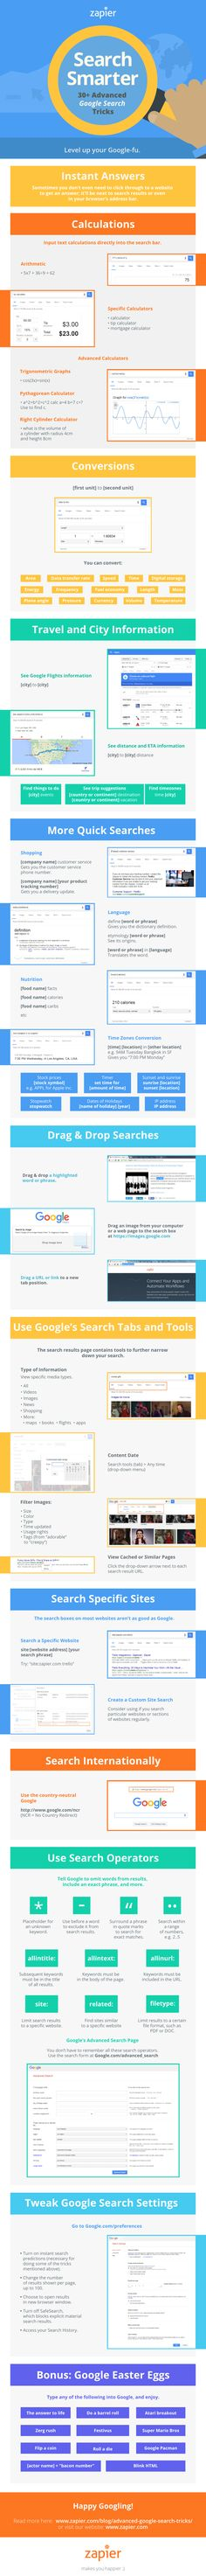 Google's search engine is an always-expanding, extremely useful tool that's packed with tons of different tools. Over on Zapier, they outline tons of different advanced tricks for searching Google as quickly as possible.